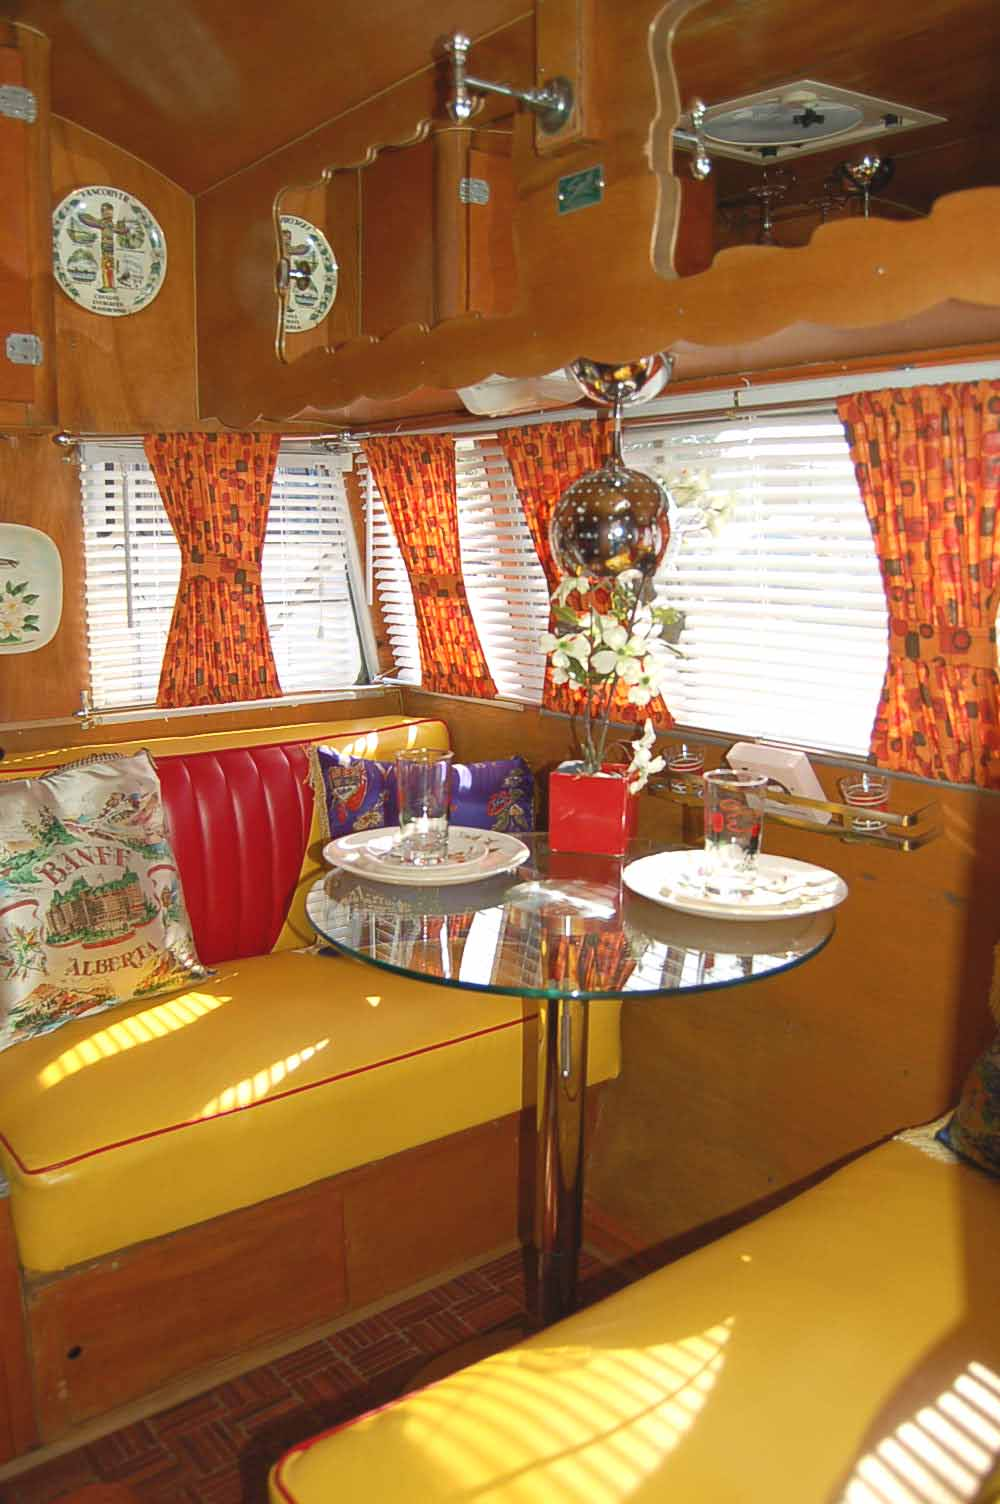 Bench Seats Upholstered In Yellow And Red 1955 Shasta Trailer Dining Area